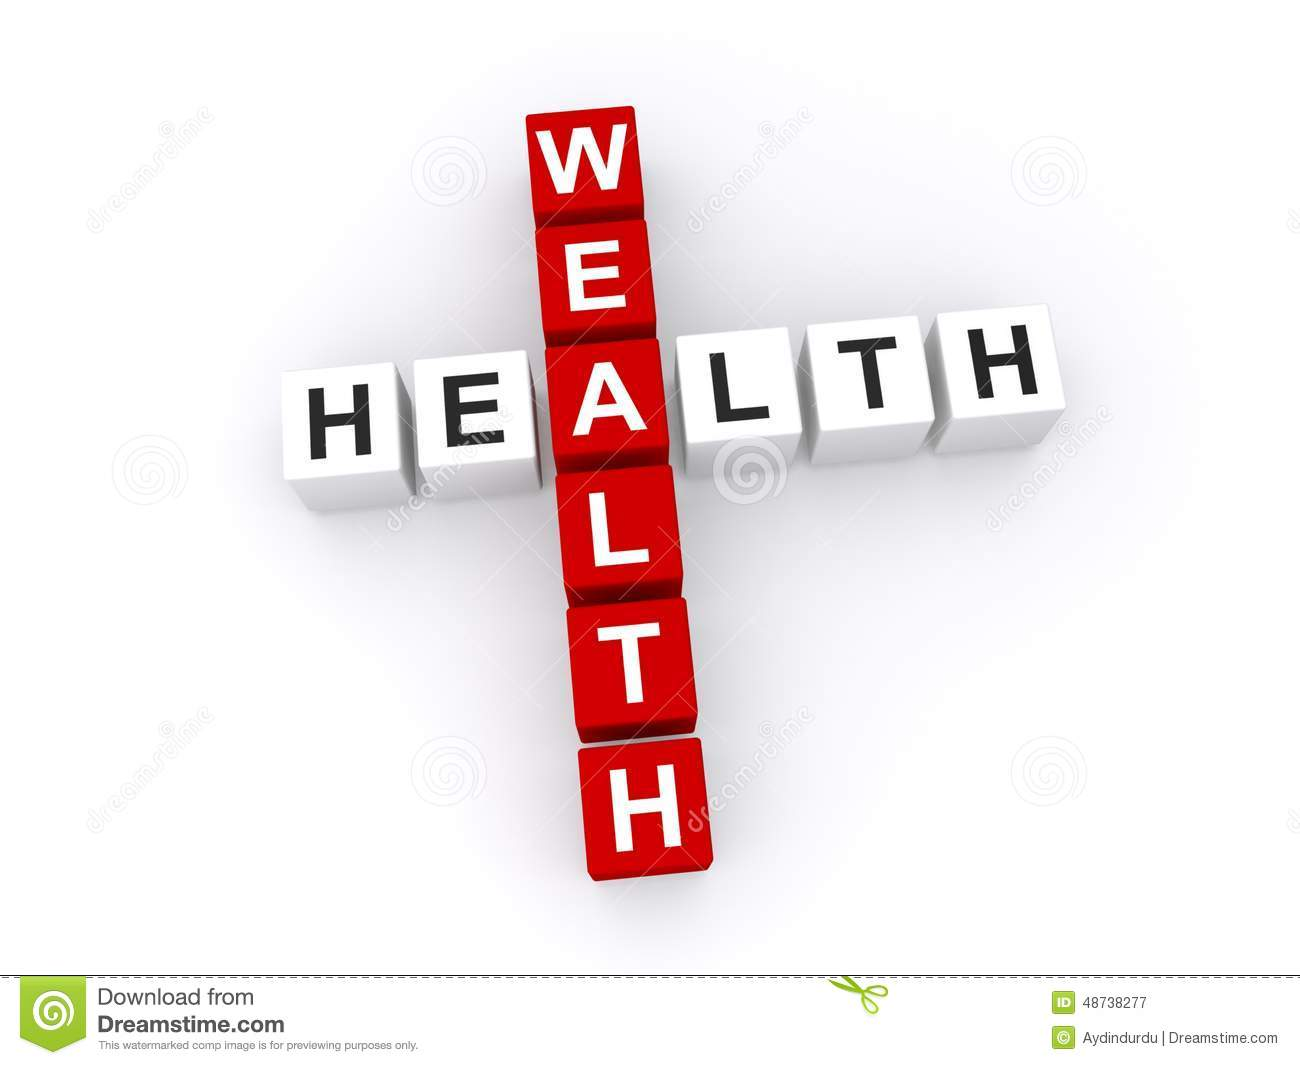 Wealth And Health Concept Stock Illustration Image 48738277